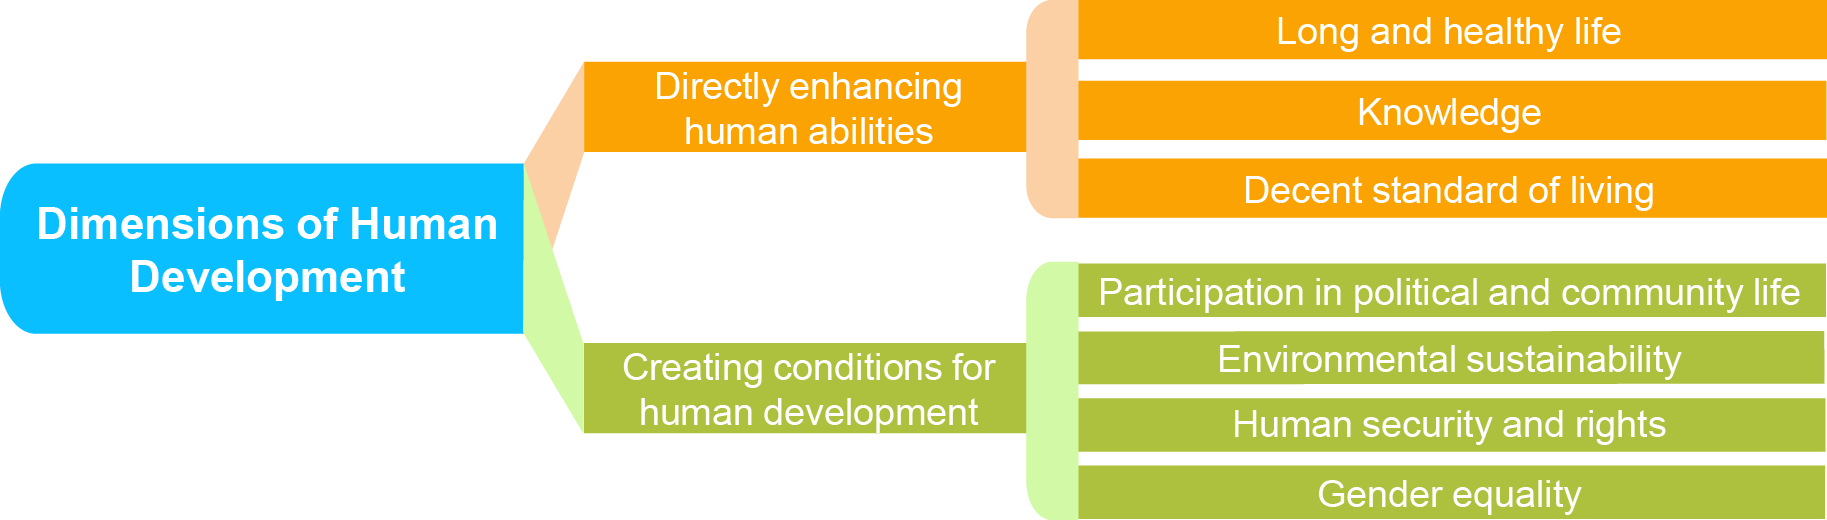 human development diagram.png